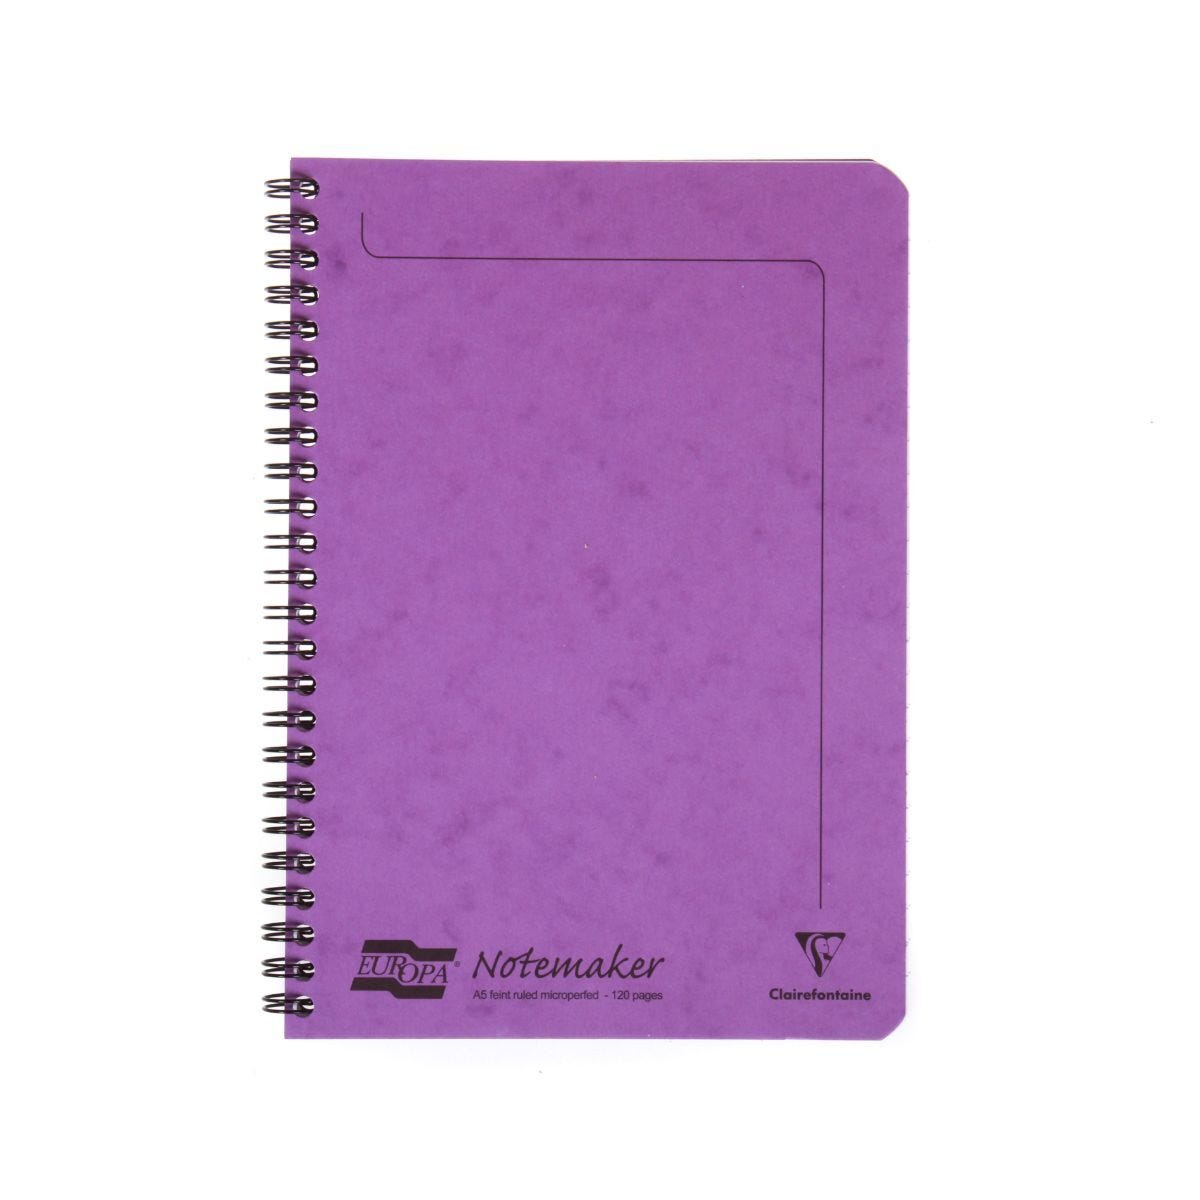 Europa A5 Notemaker 120 Pages 60 Sheets 90gsm Lilac